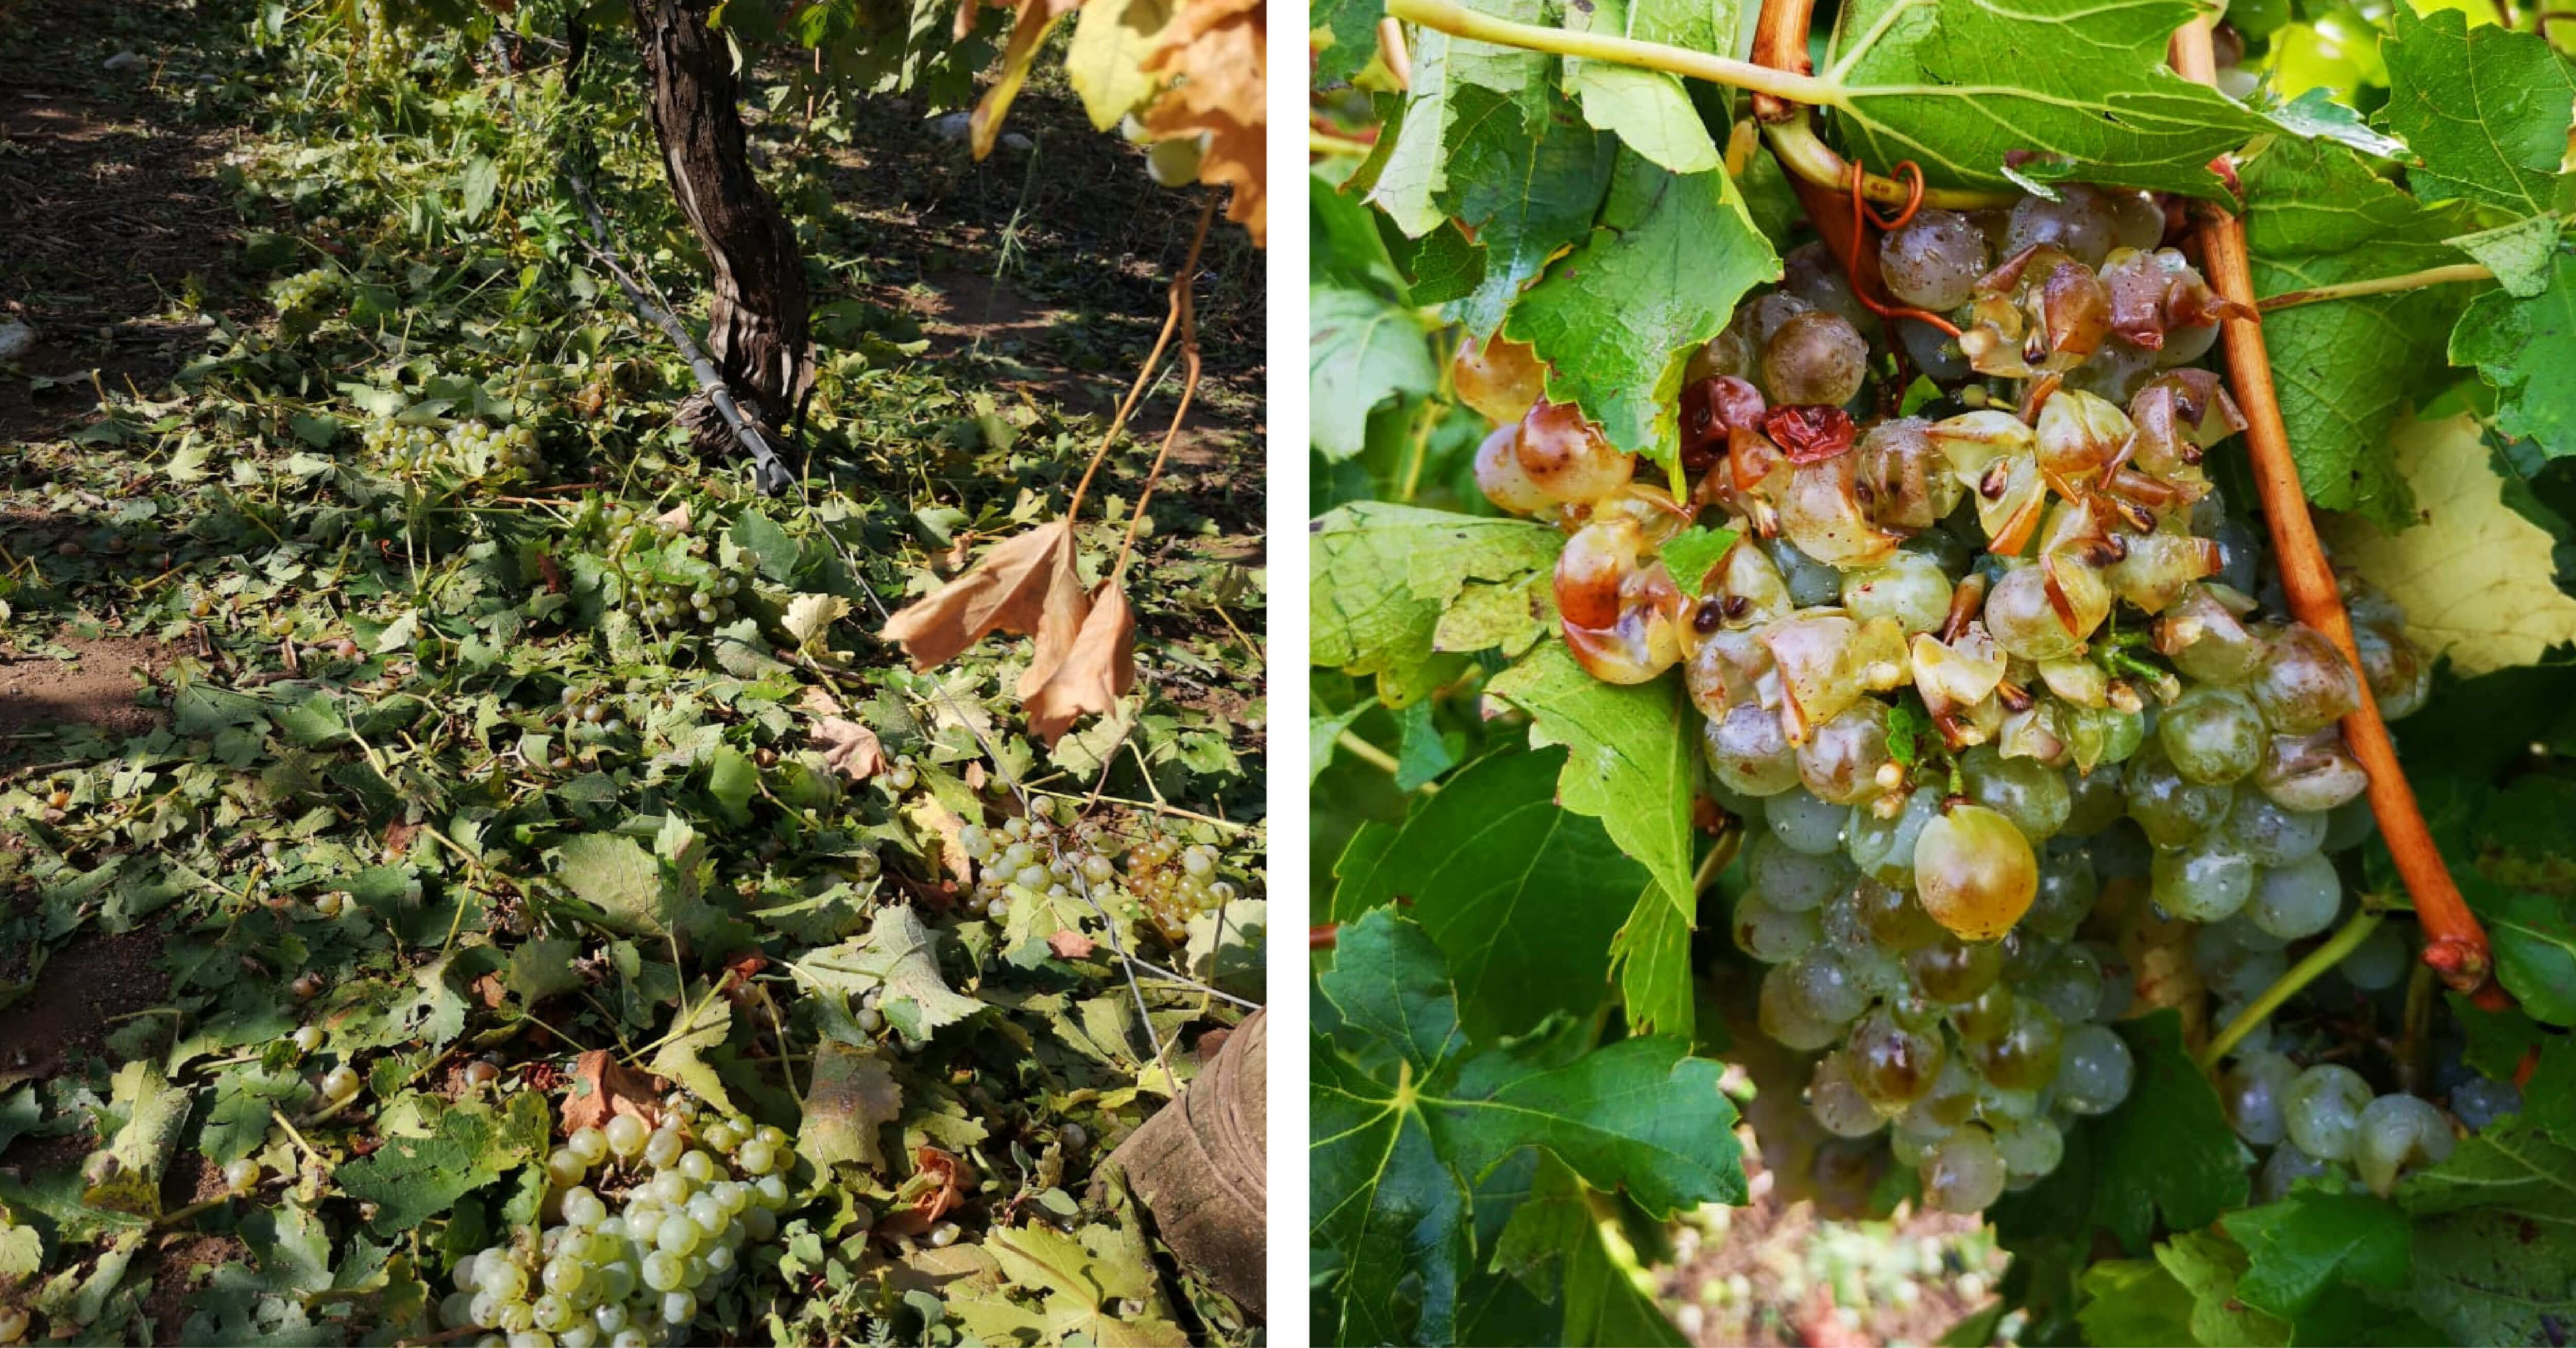 Hail damage - grape clusters knocked to the ground